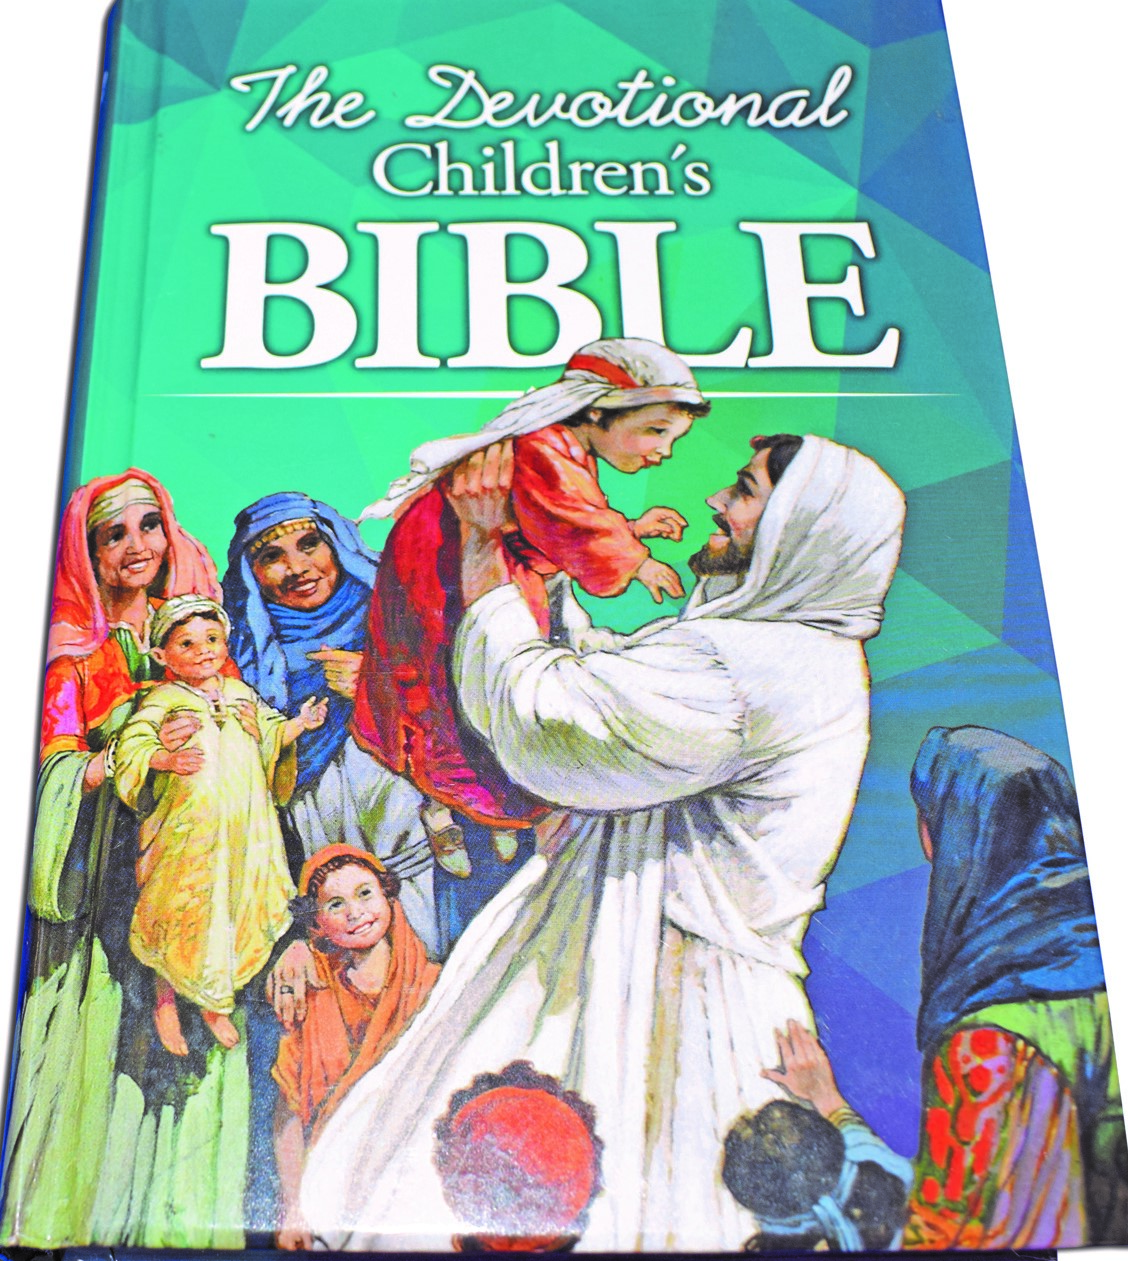 The Devotional childrens Bible